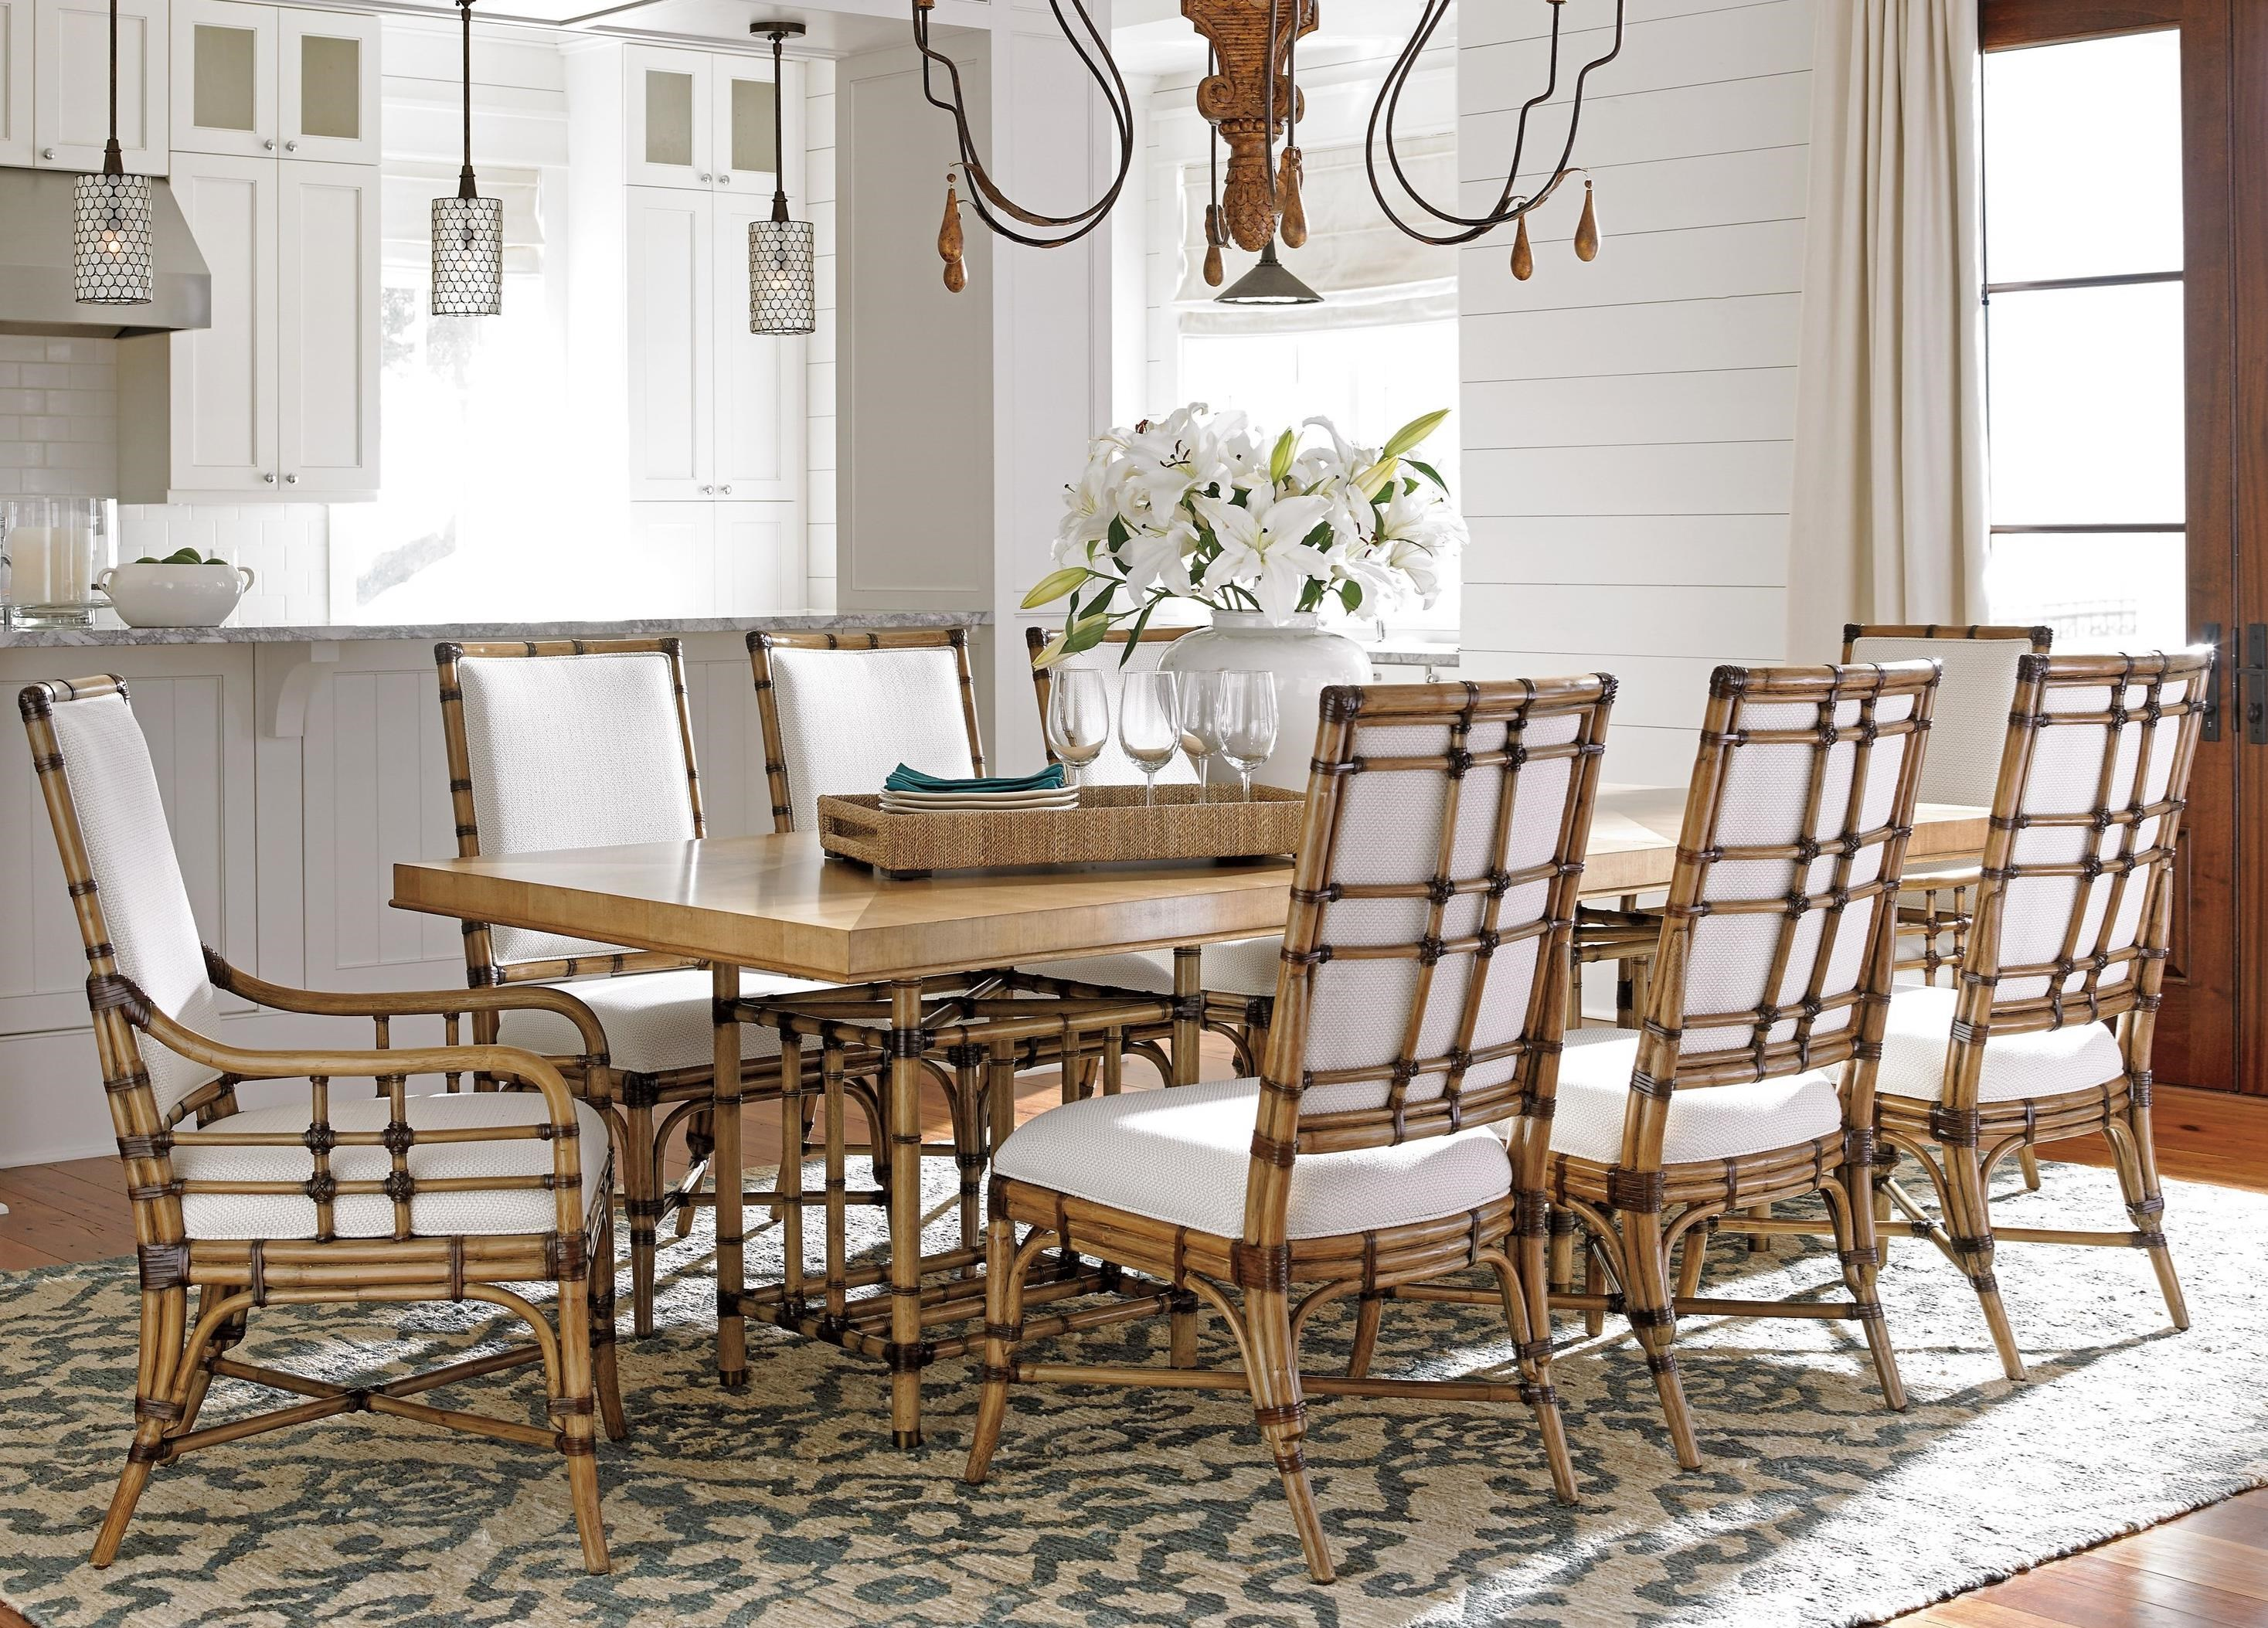 Tommy Bahama Home Twin Palms 9 Pc Dining Set - Item Number: 558-876C+2X883-01+6X882-01